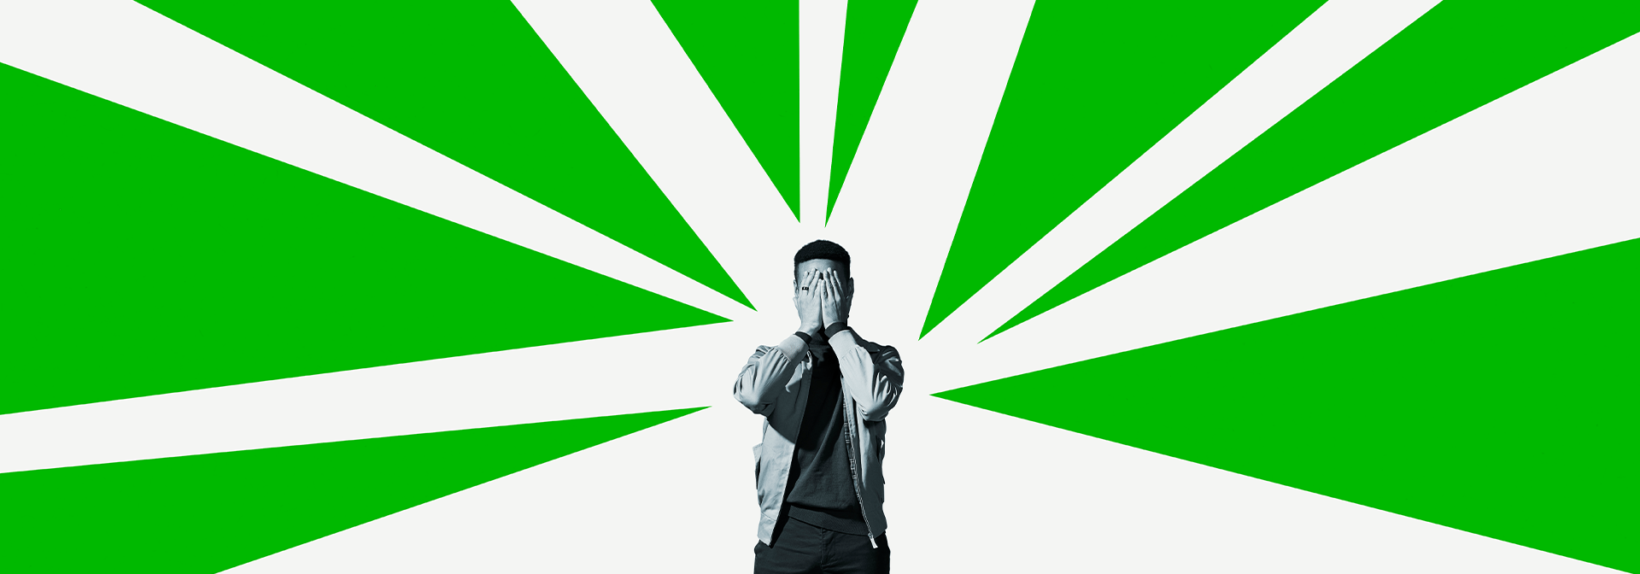 Man with hands over eyes, green and white graphical background